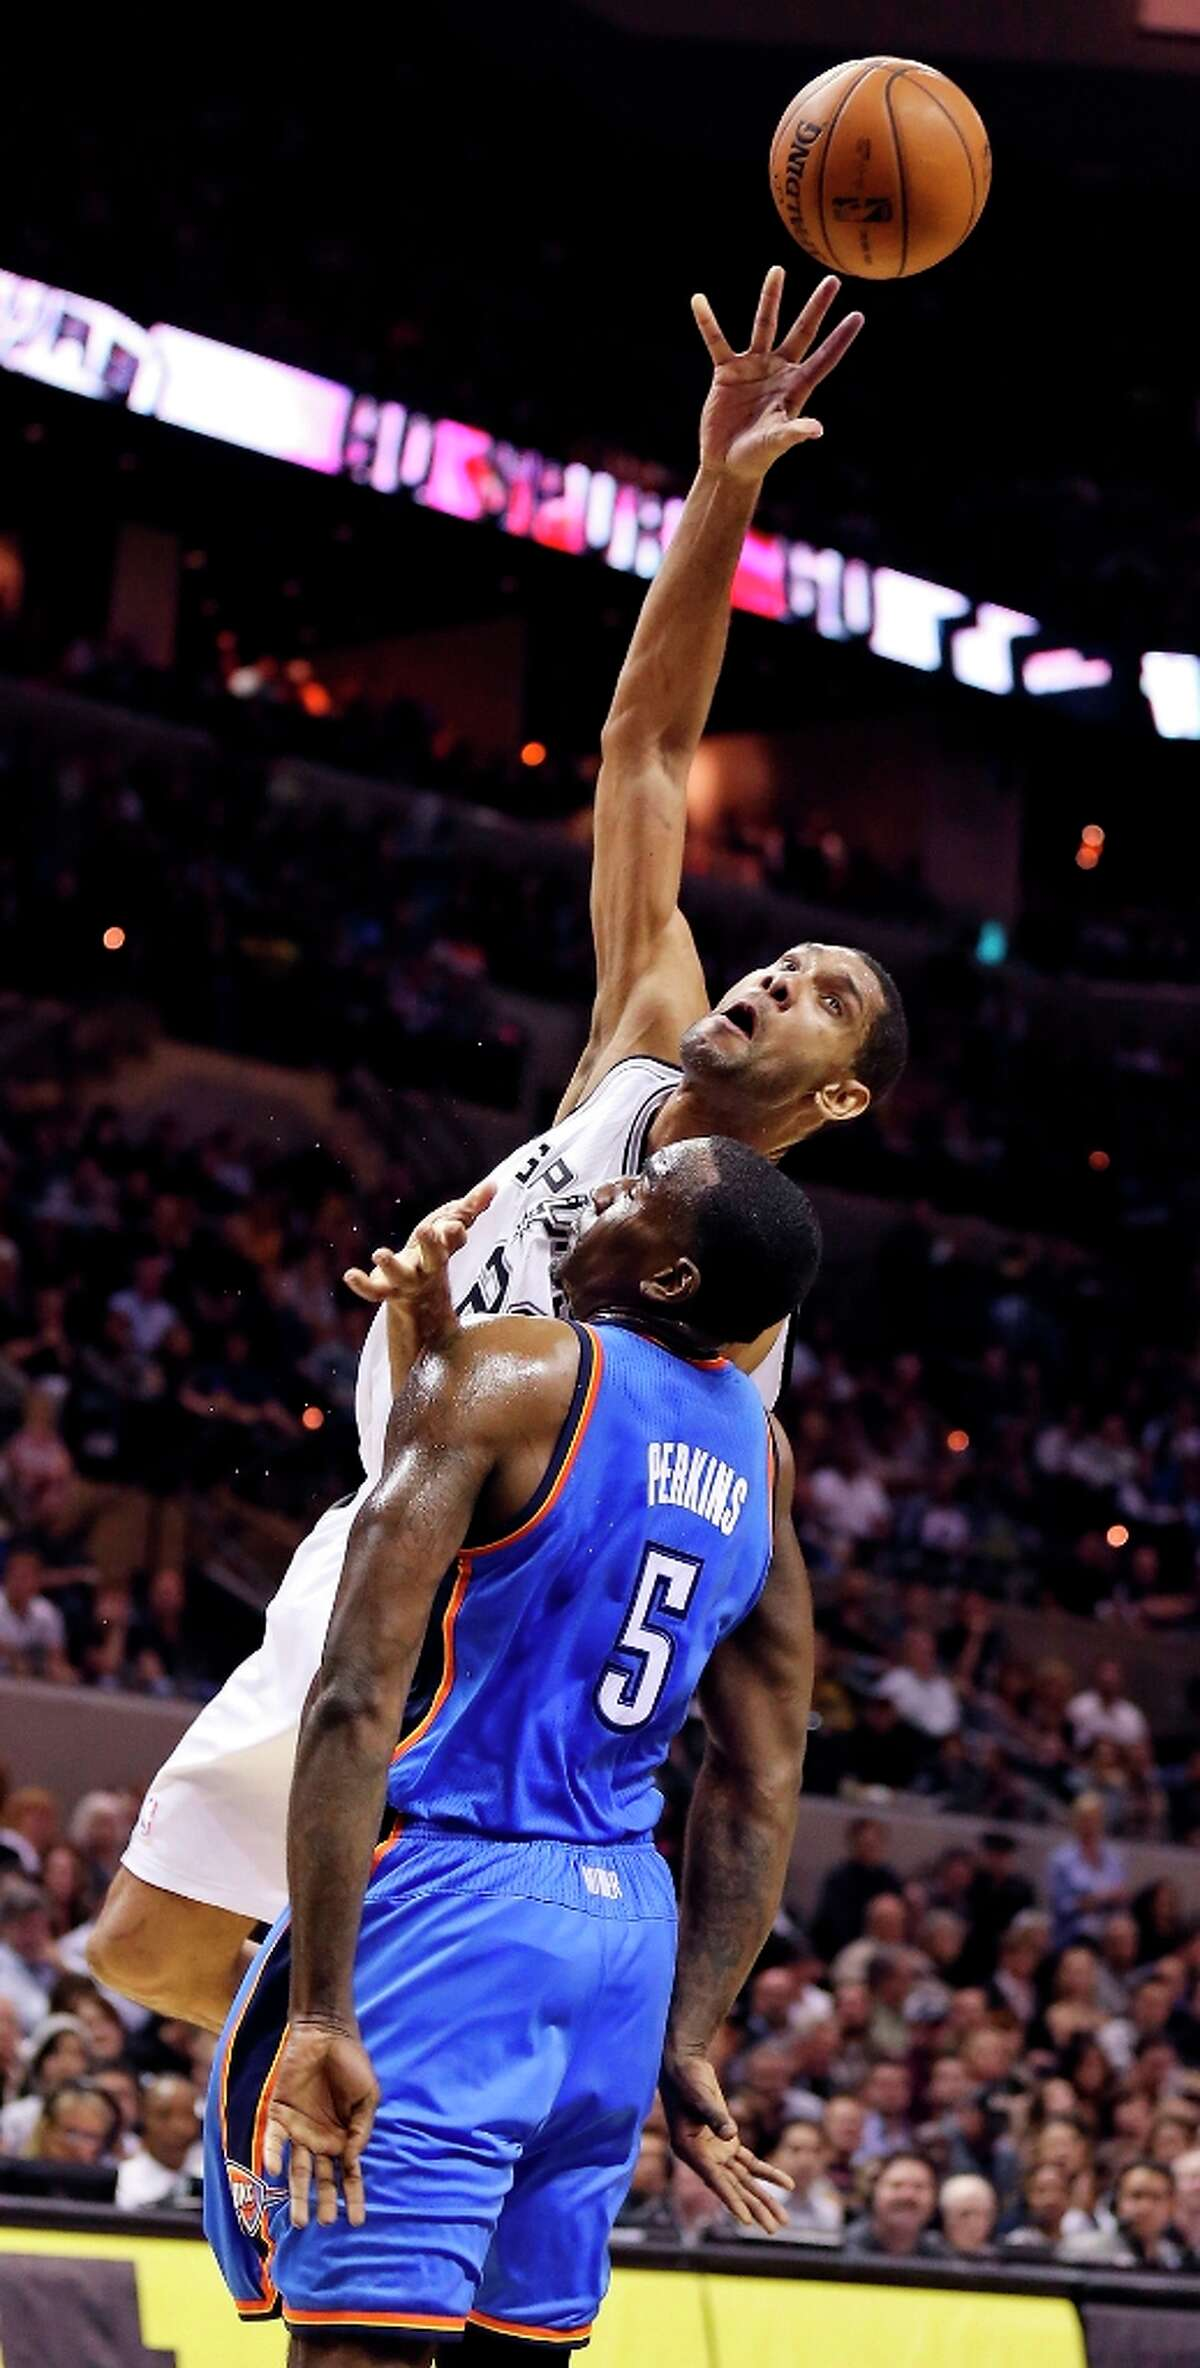 The Spurs' Tim Duncan shoots over Oklahoma City Thunder's Kendrick Perkins during first half action Monday, March 11, 2013 at the AT&T Center.